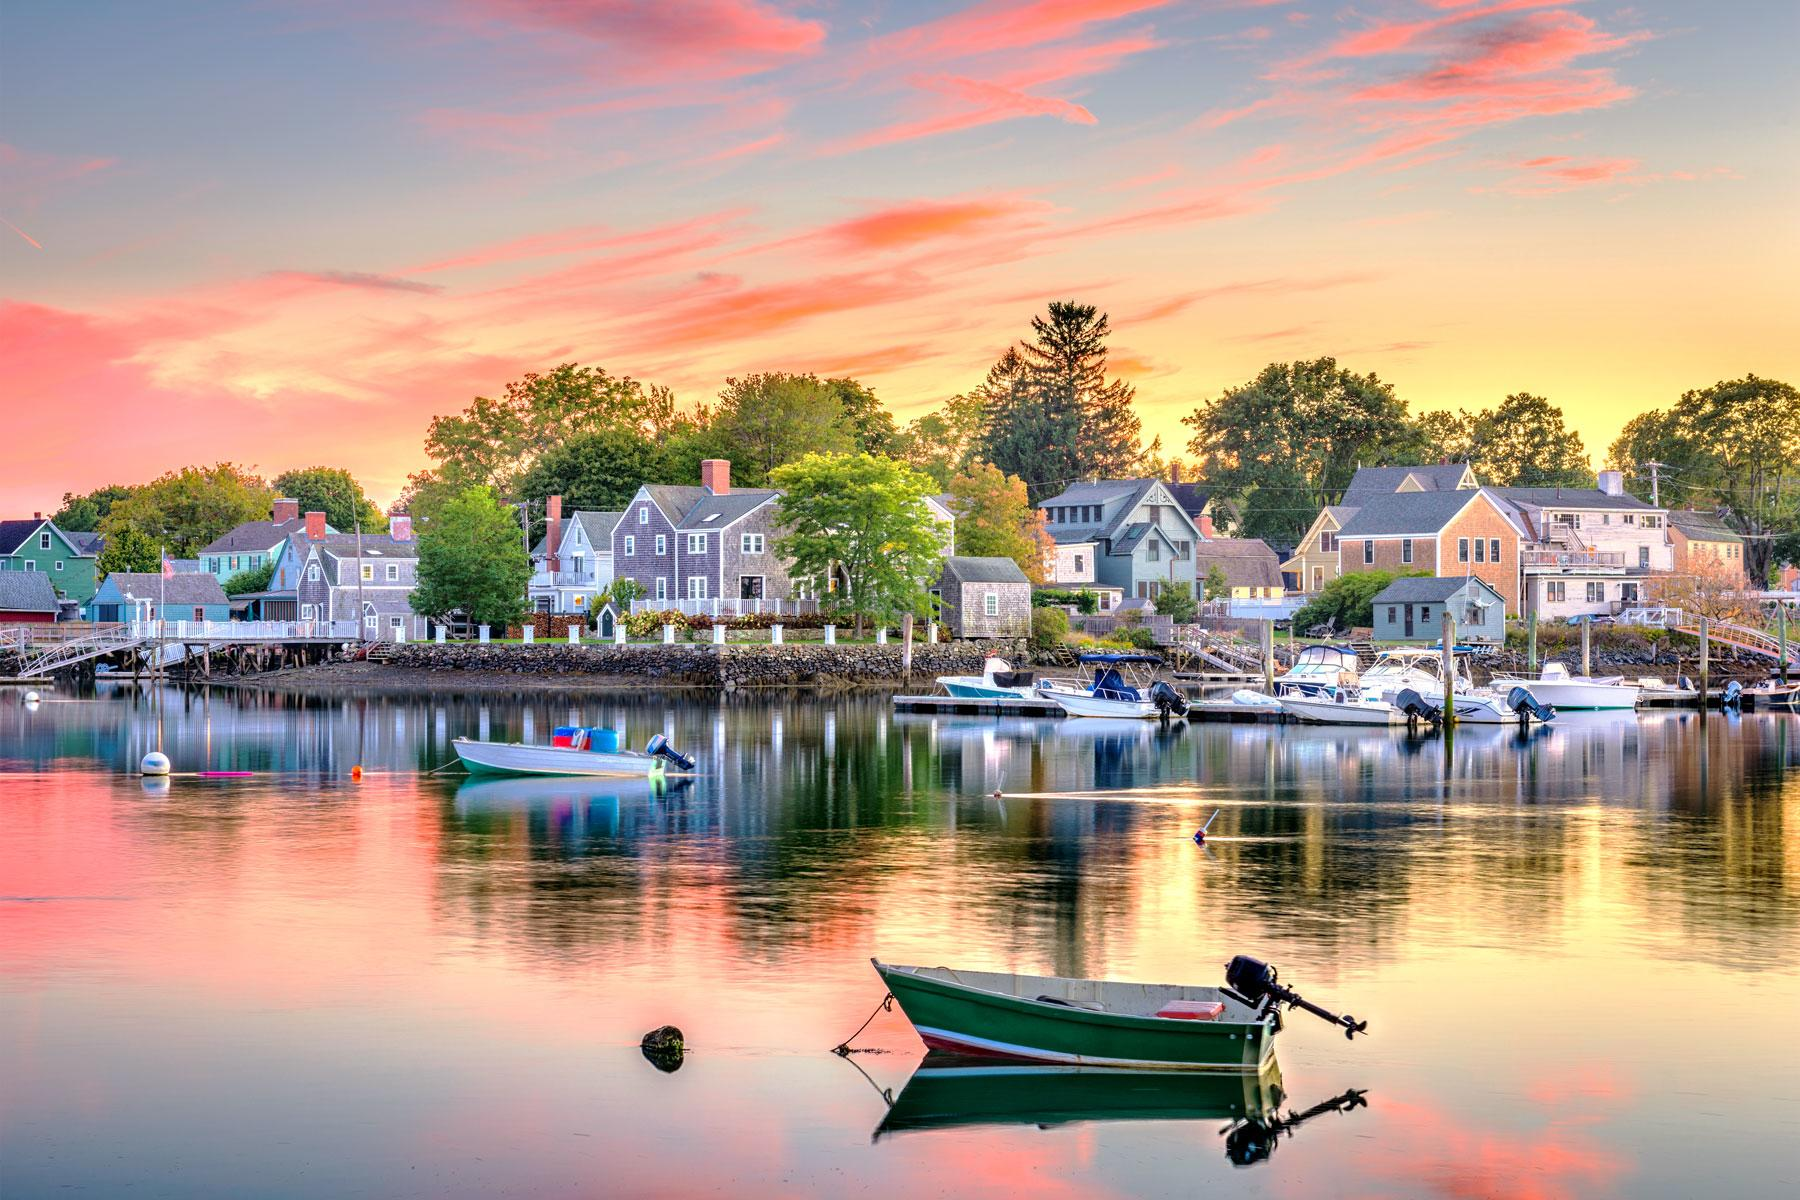 HERO_Picturesque_Towns_shutterstock_647908168